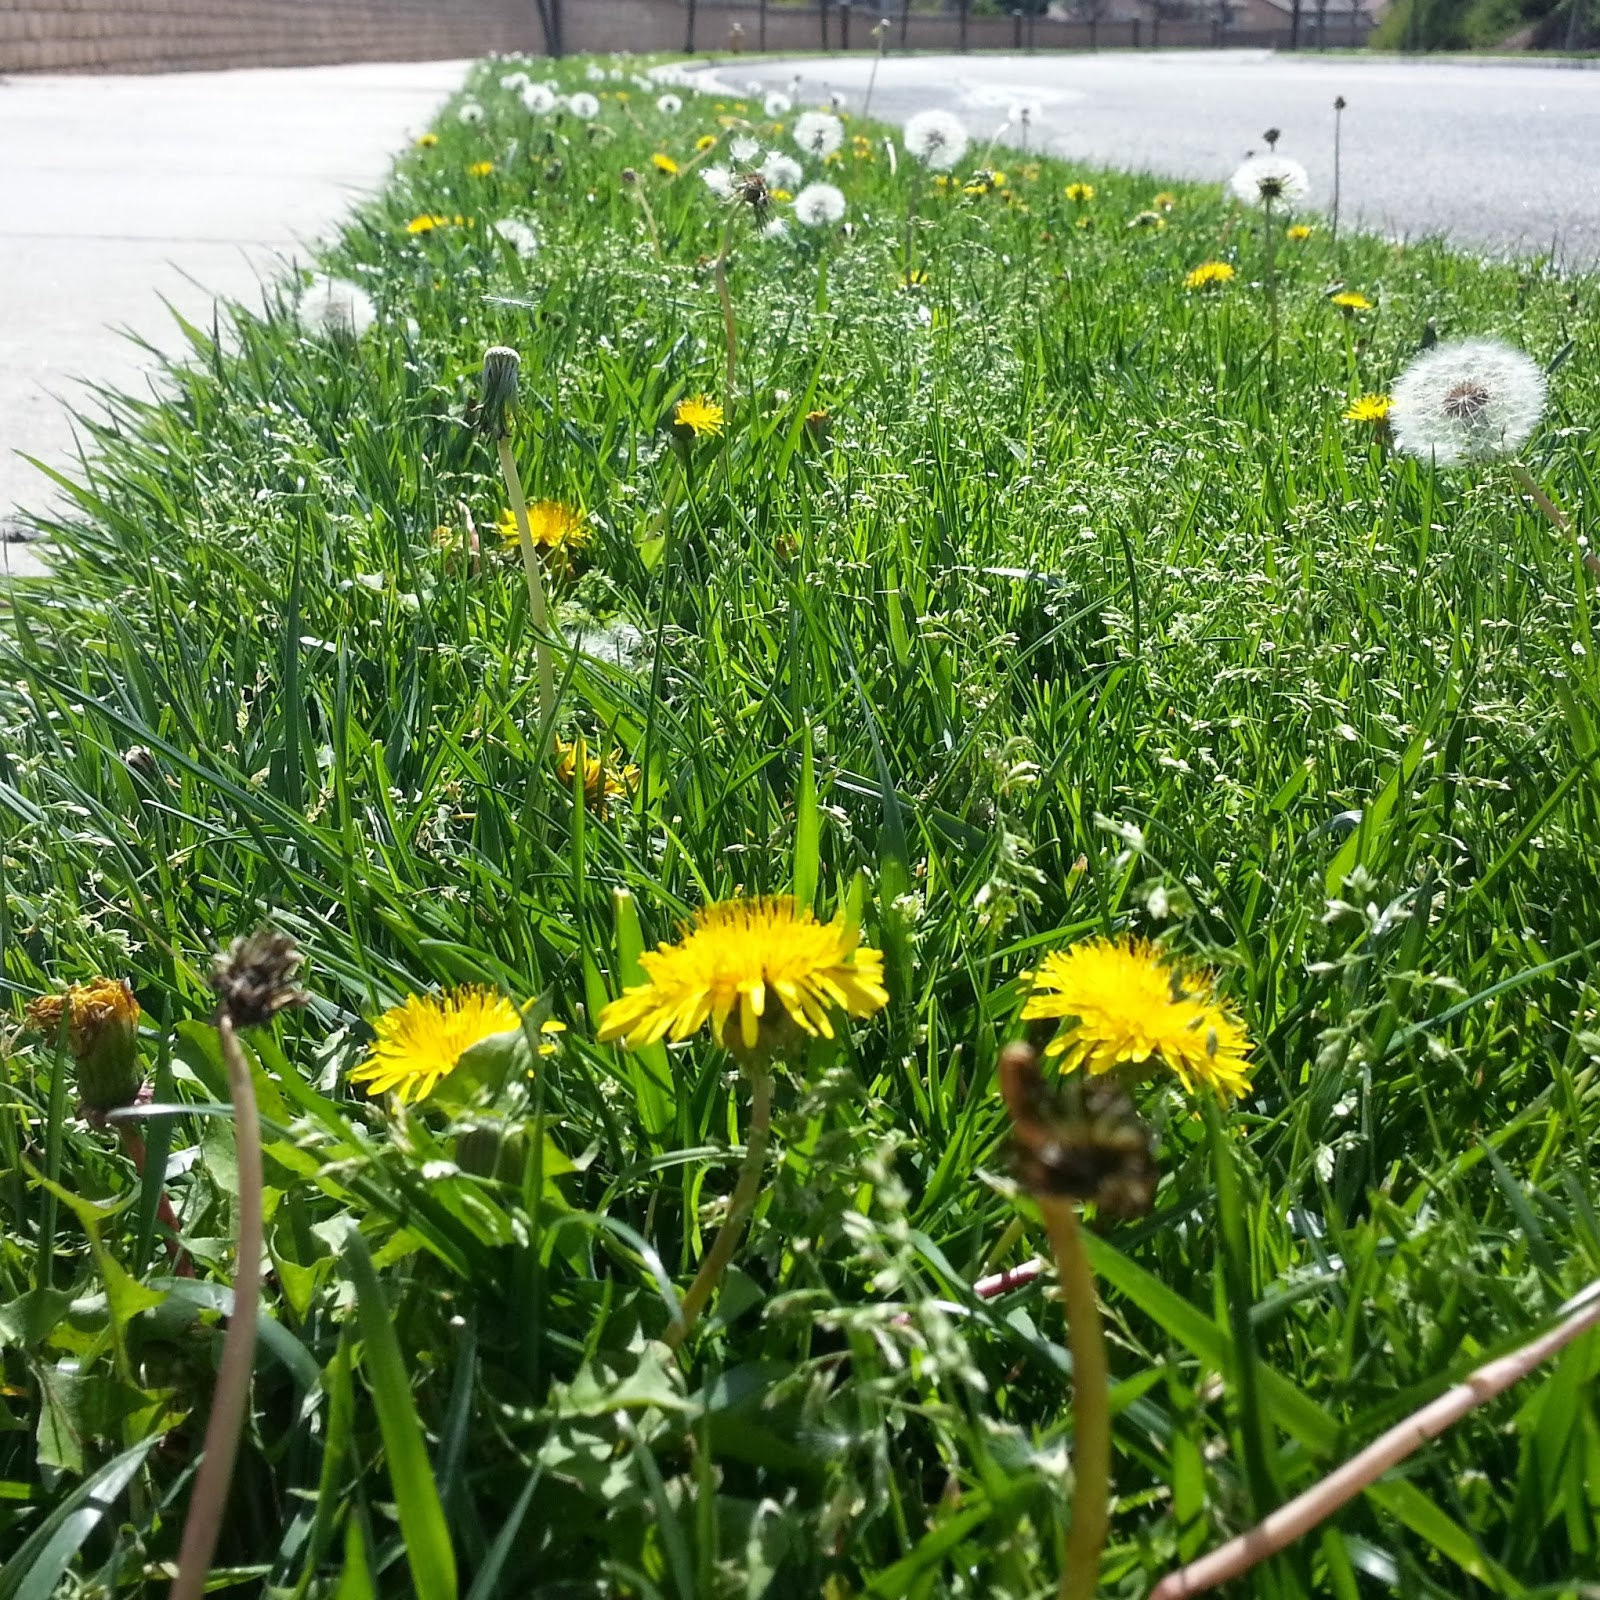 Dandelions in median strip